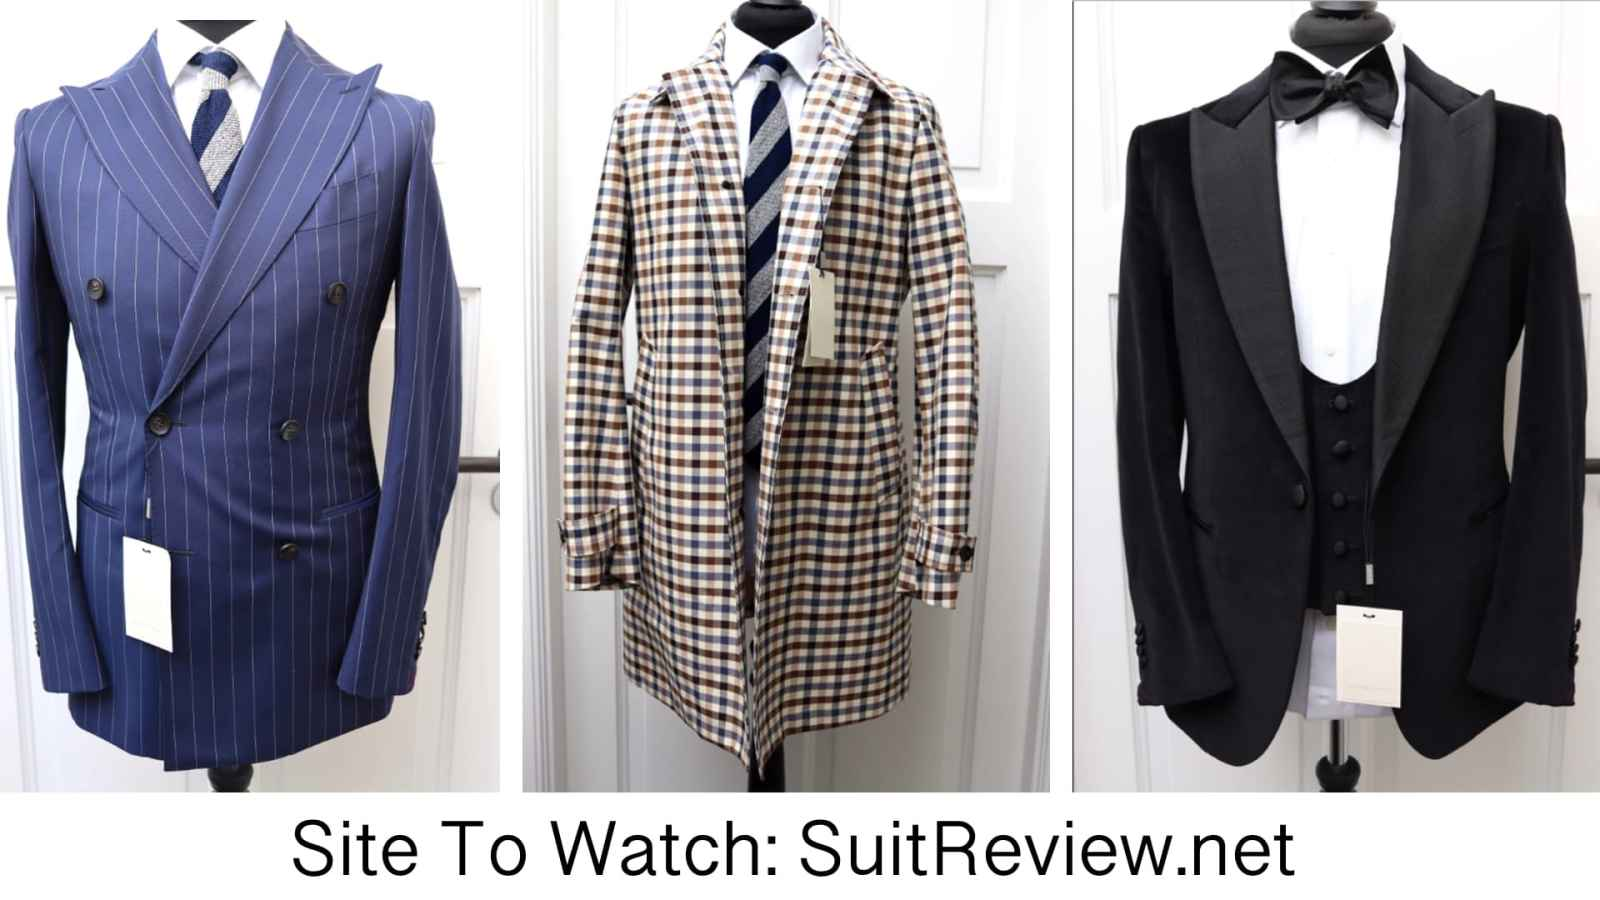 SuitReview.net site To Watch on Men's Style Pro